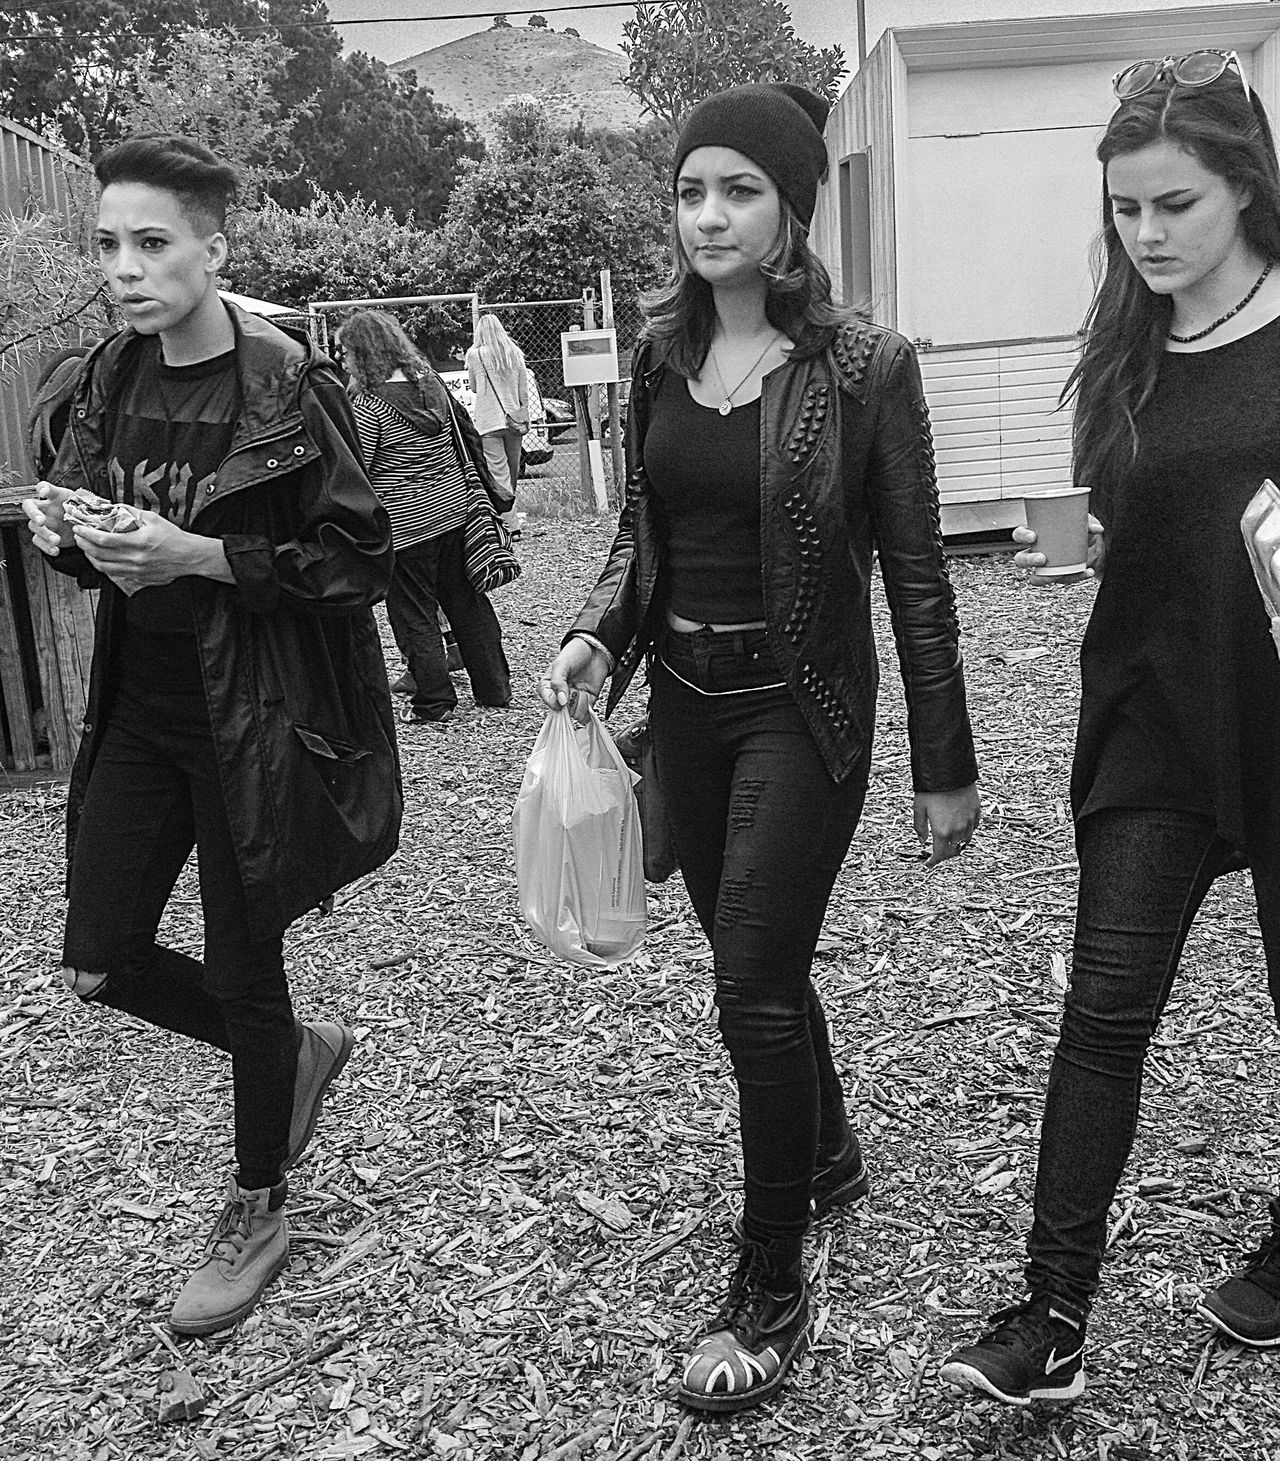 Blackandwhite Candid Casual Clothing Friendship Front View Outdoors Streetfashion Streetphotography Three Girls